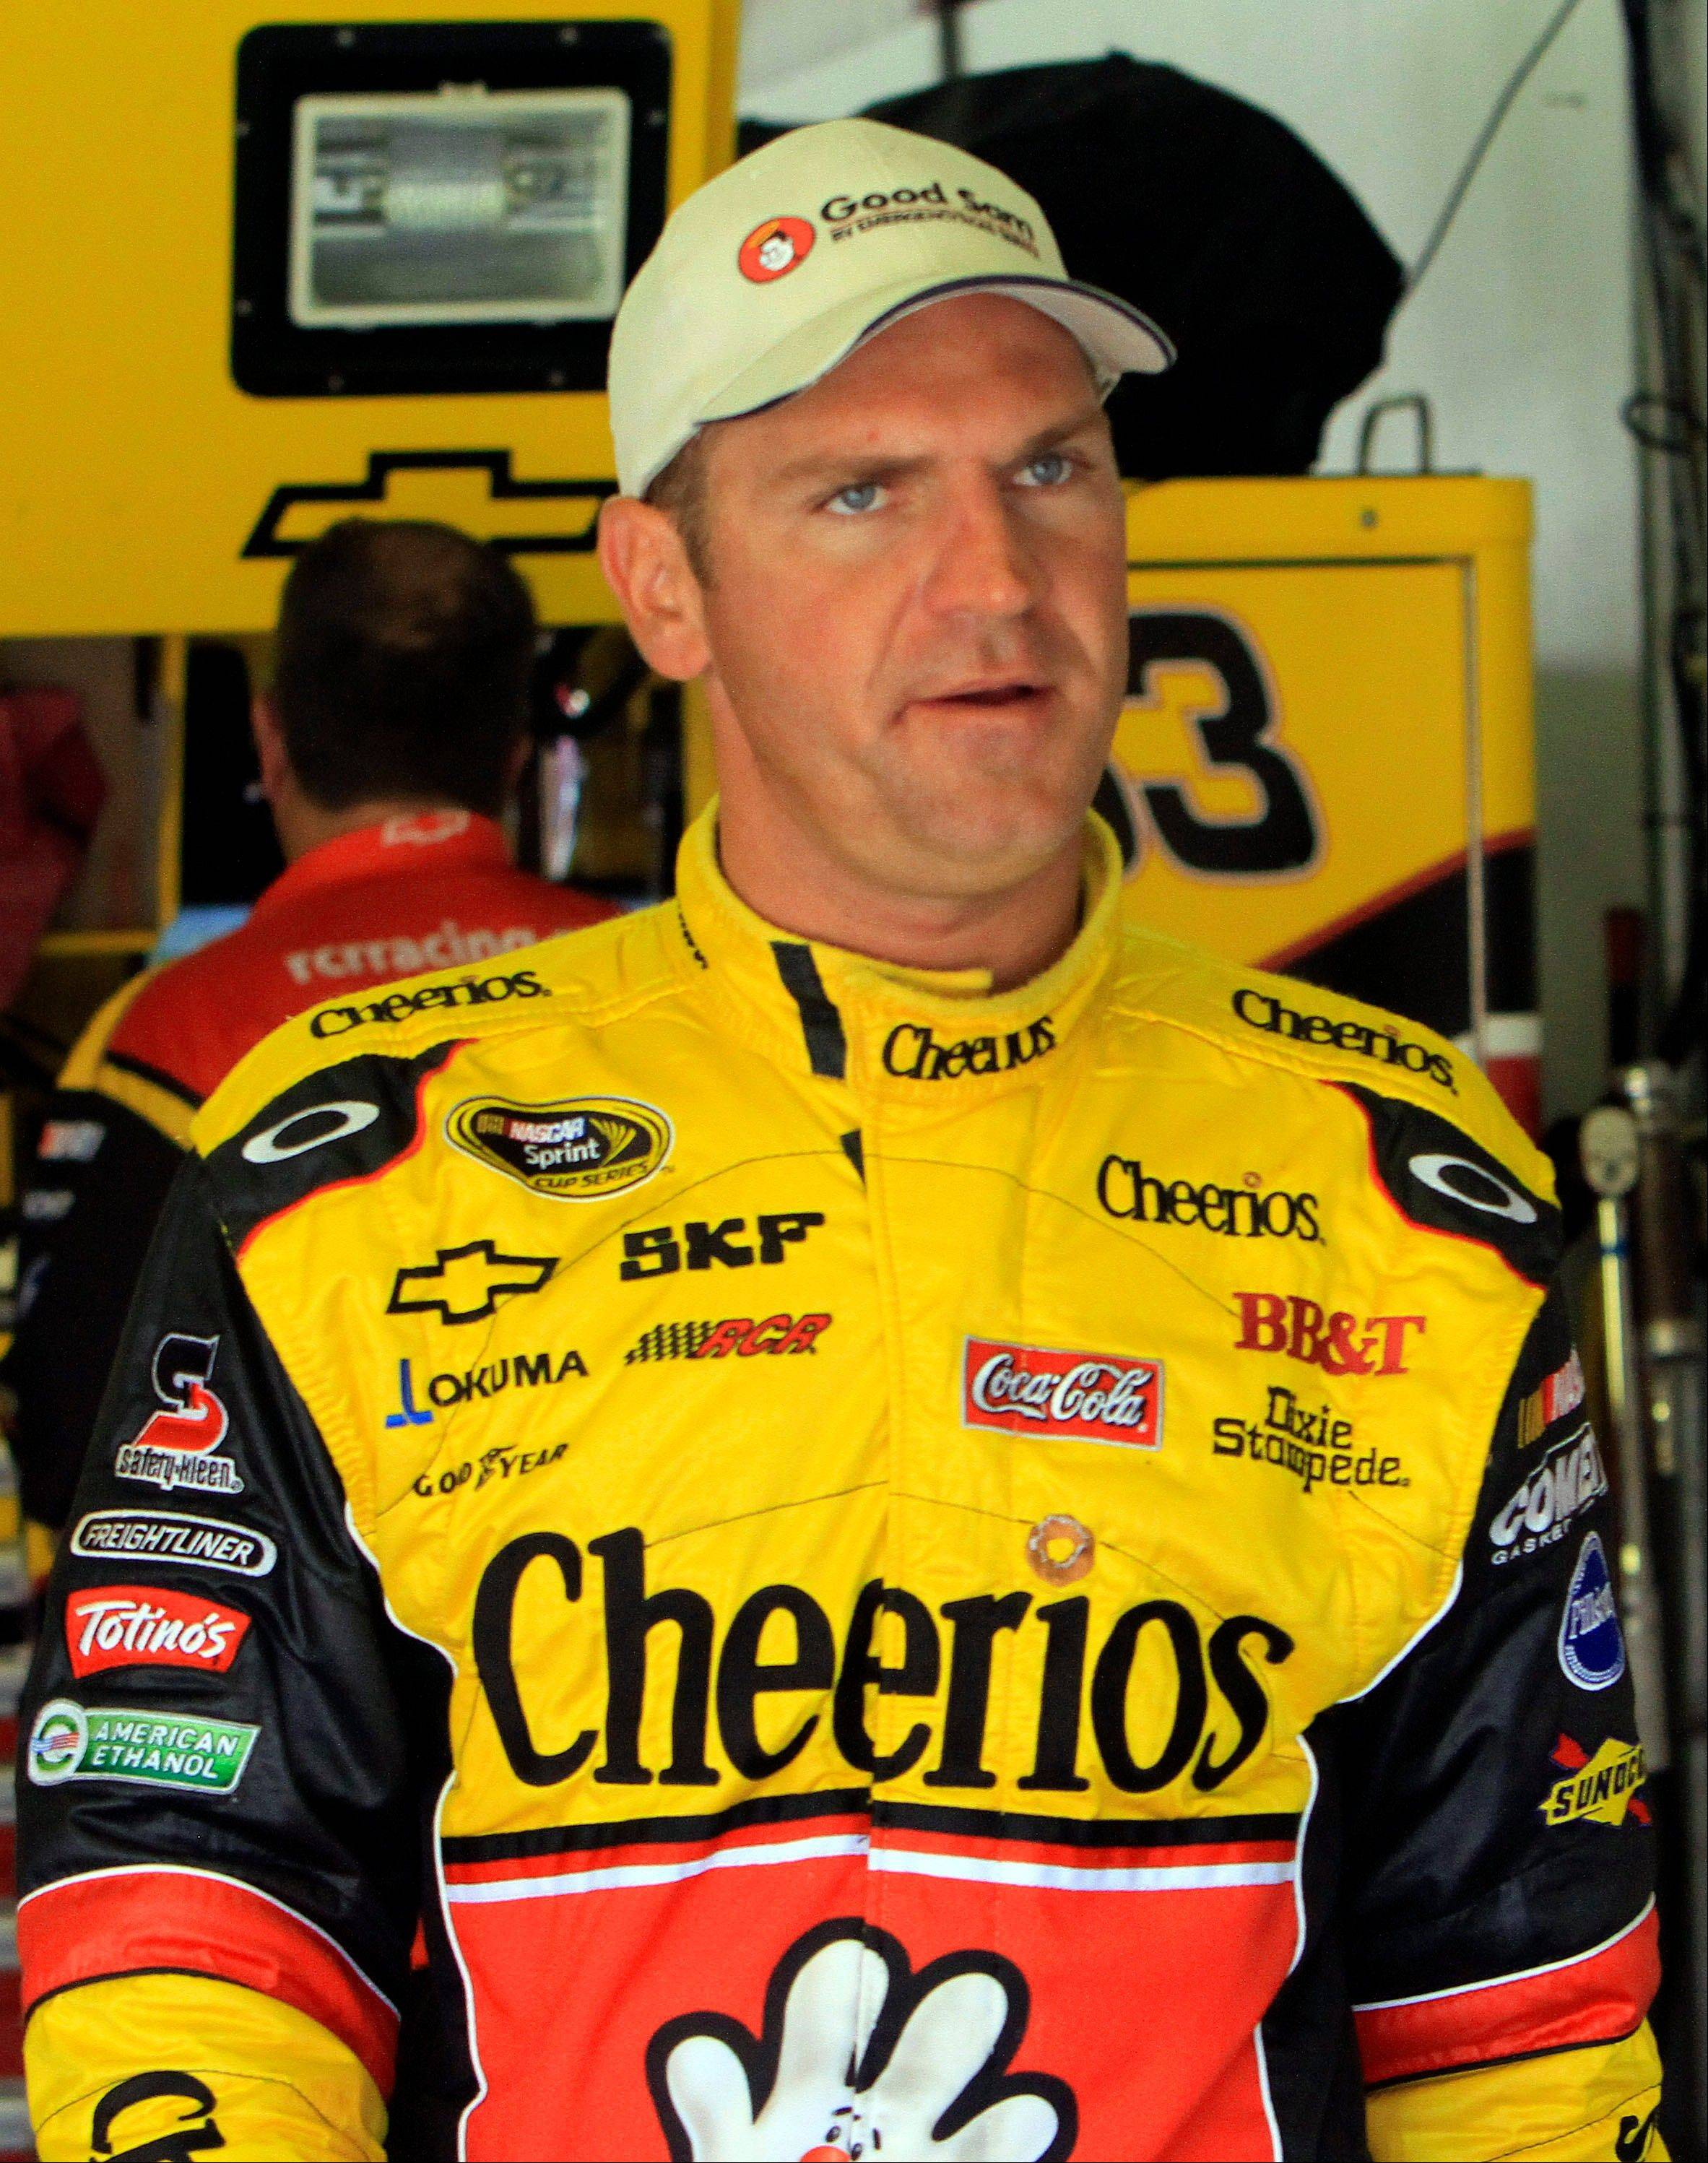 NASCAR driver Clint Bowyer takes a break from practice at New Hampshire Motor Speedway in Loudon, N.H. Saturday July 16, 2011. Bowyer is racing in Sunday's NASCAR Sprint Cup Series Lenox Industrial Tools 301. (AP Photo/Jim Cole)